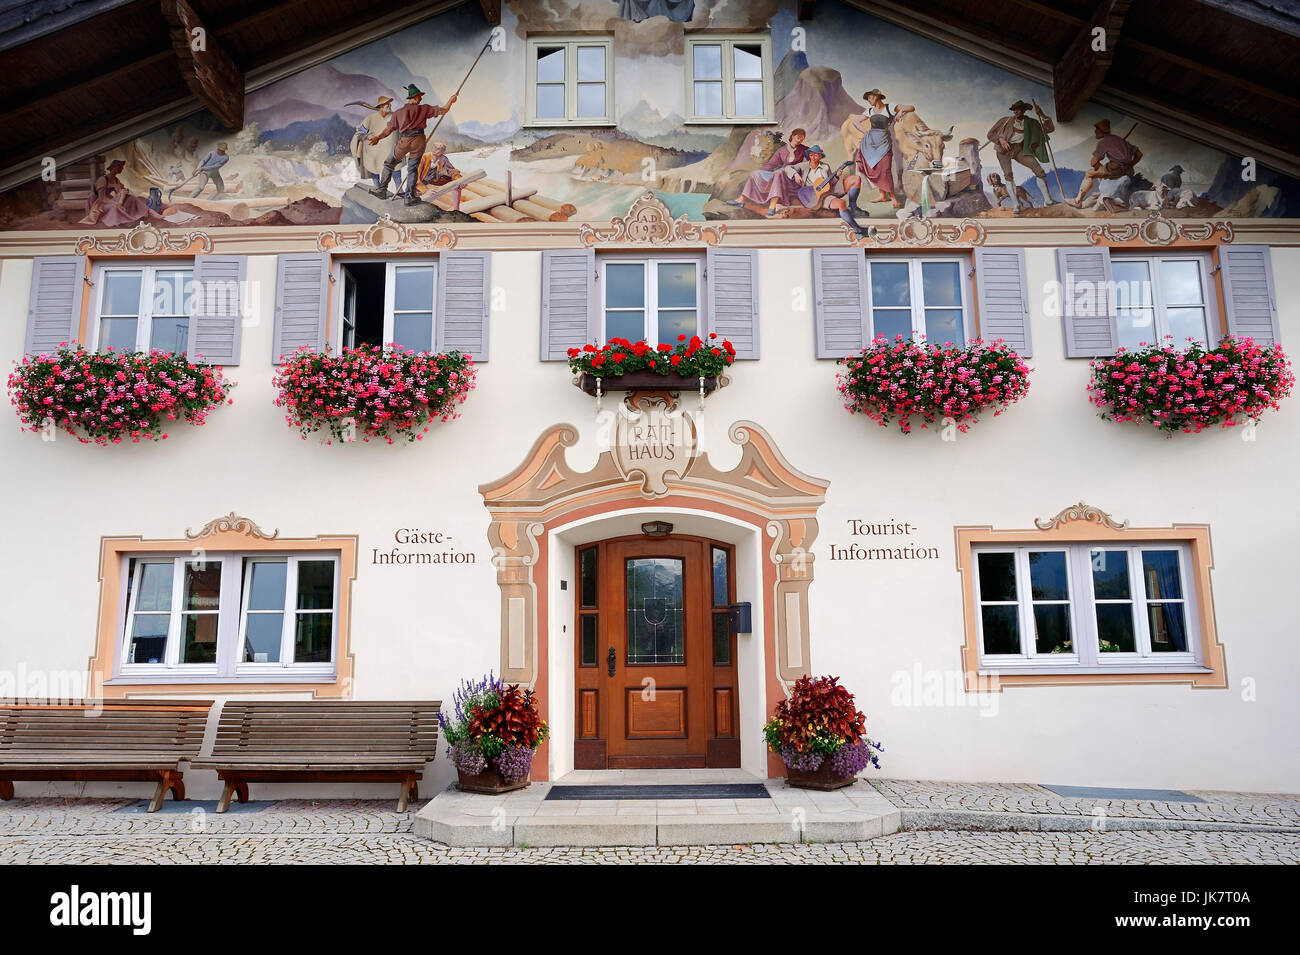 Town hall and tourist information with paintings, Krun, Werdenfelser Land, Bavaria, Germany | Rathaus und Tourist - Stock Image